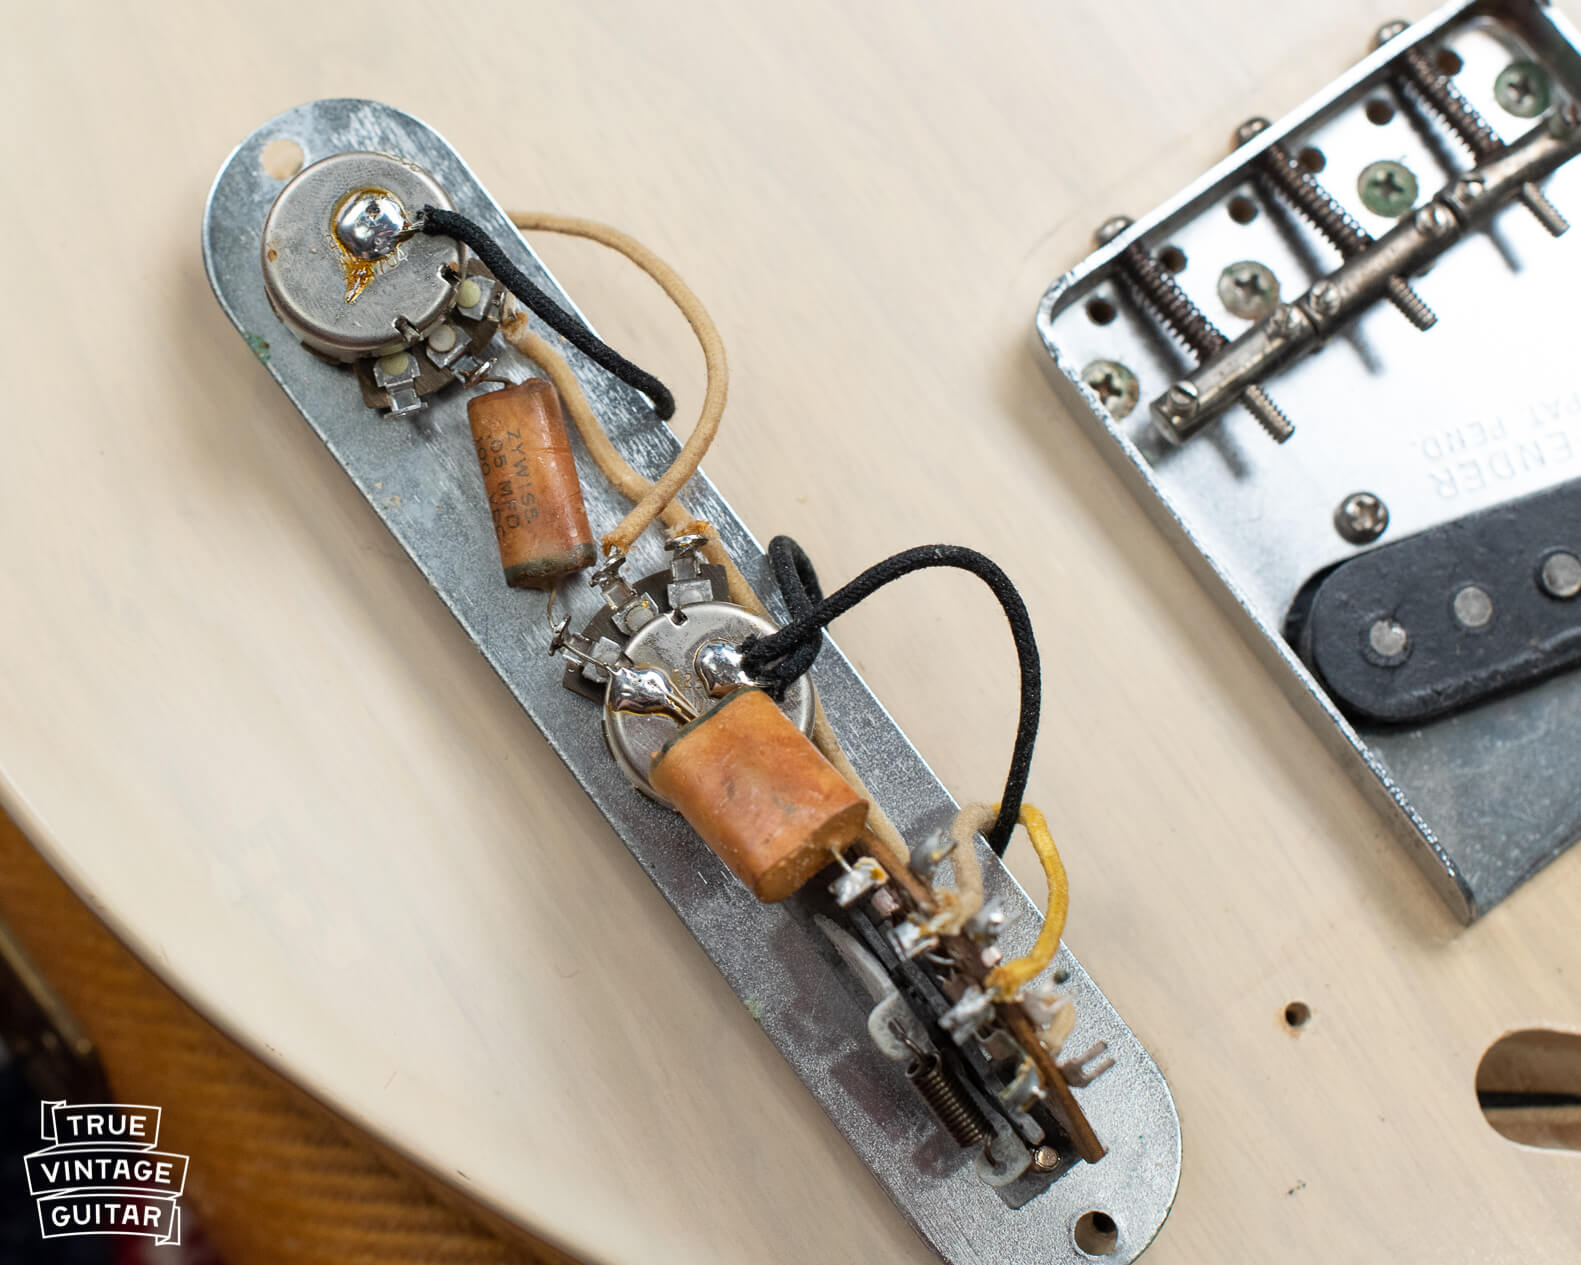 How to date Fender Telecaster with potentiometer codes